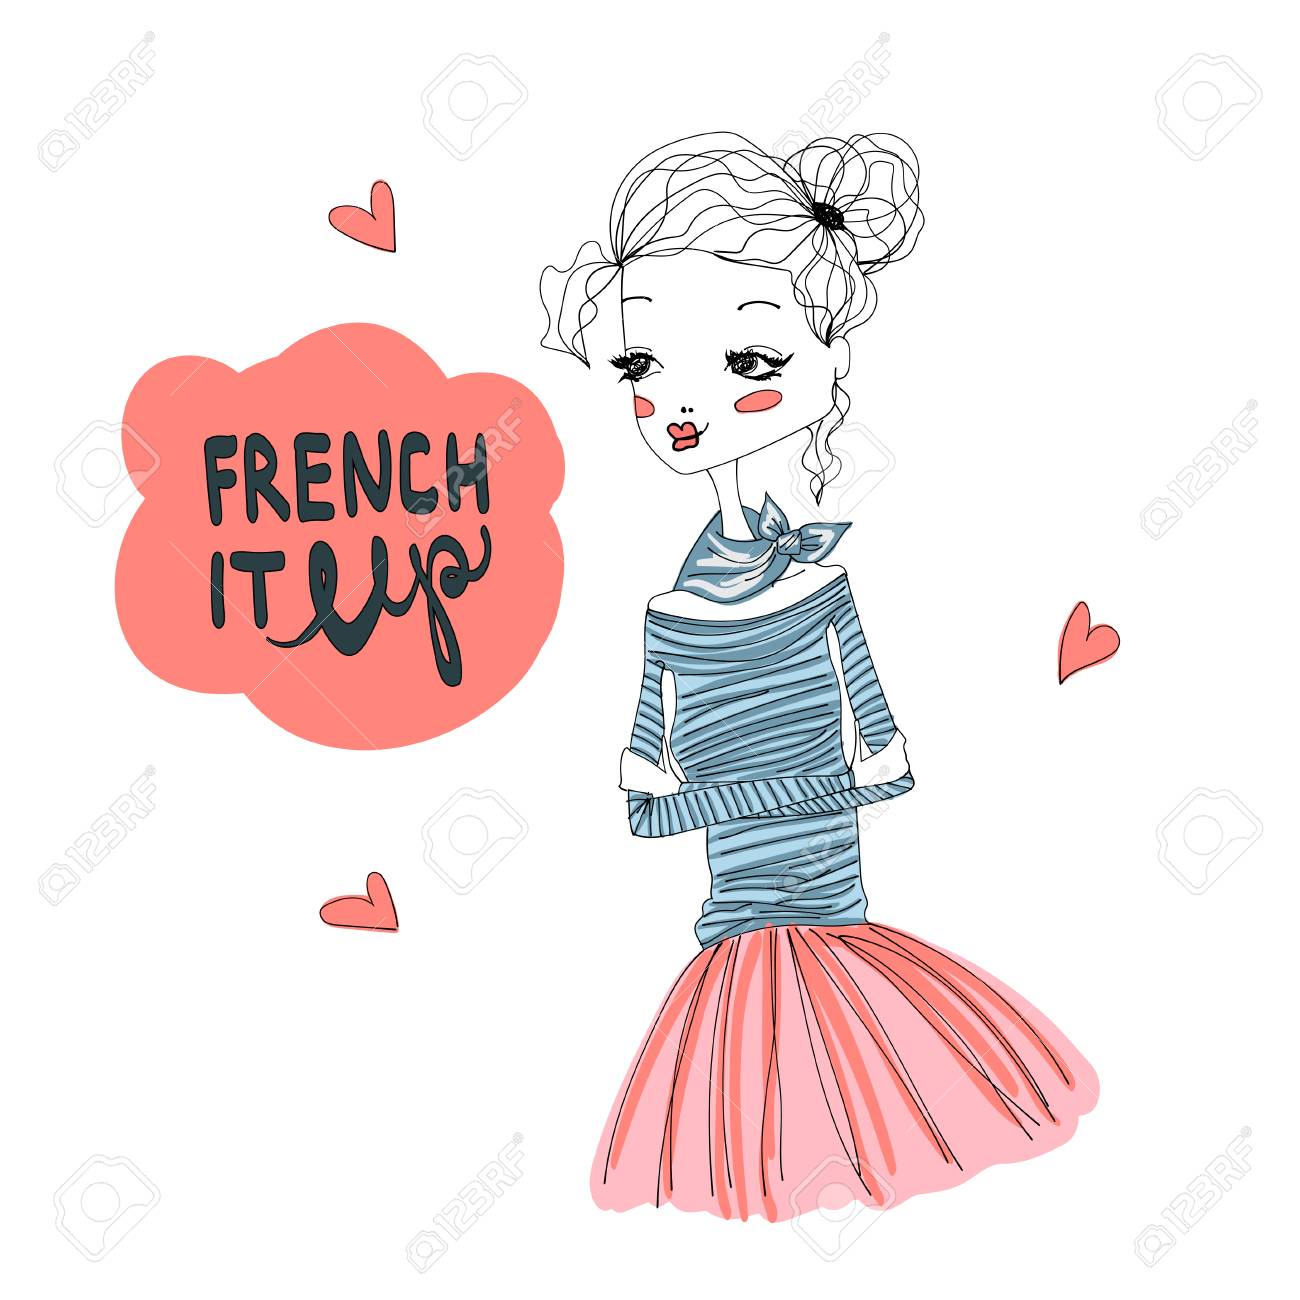 French It Up Fashion Illustration with a Cute French Girl Wearing...